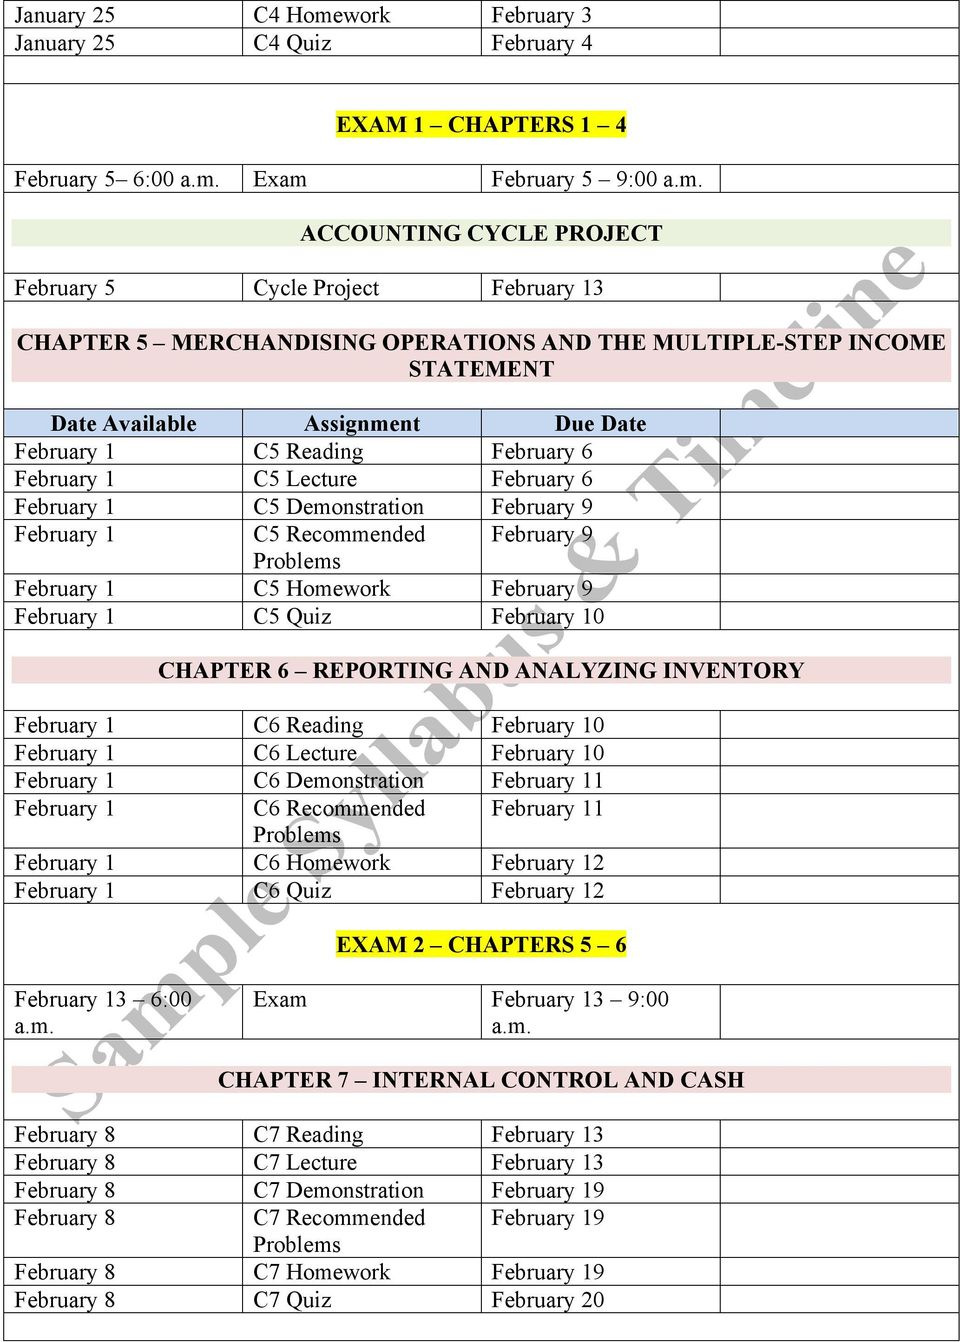 Exam February 5 9:00 a.m. ACCOUNTING CYCLE PROJECT February 5 Cycle Project February 13 CHAPTER 5 MERCHANDISING OPERATIONS AND THE MULTIPLE-STEP INCOME STATEMENT Date Available Assignment Due Date